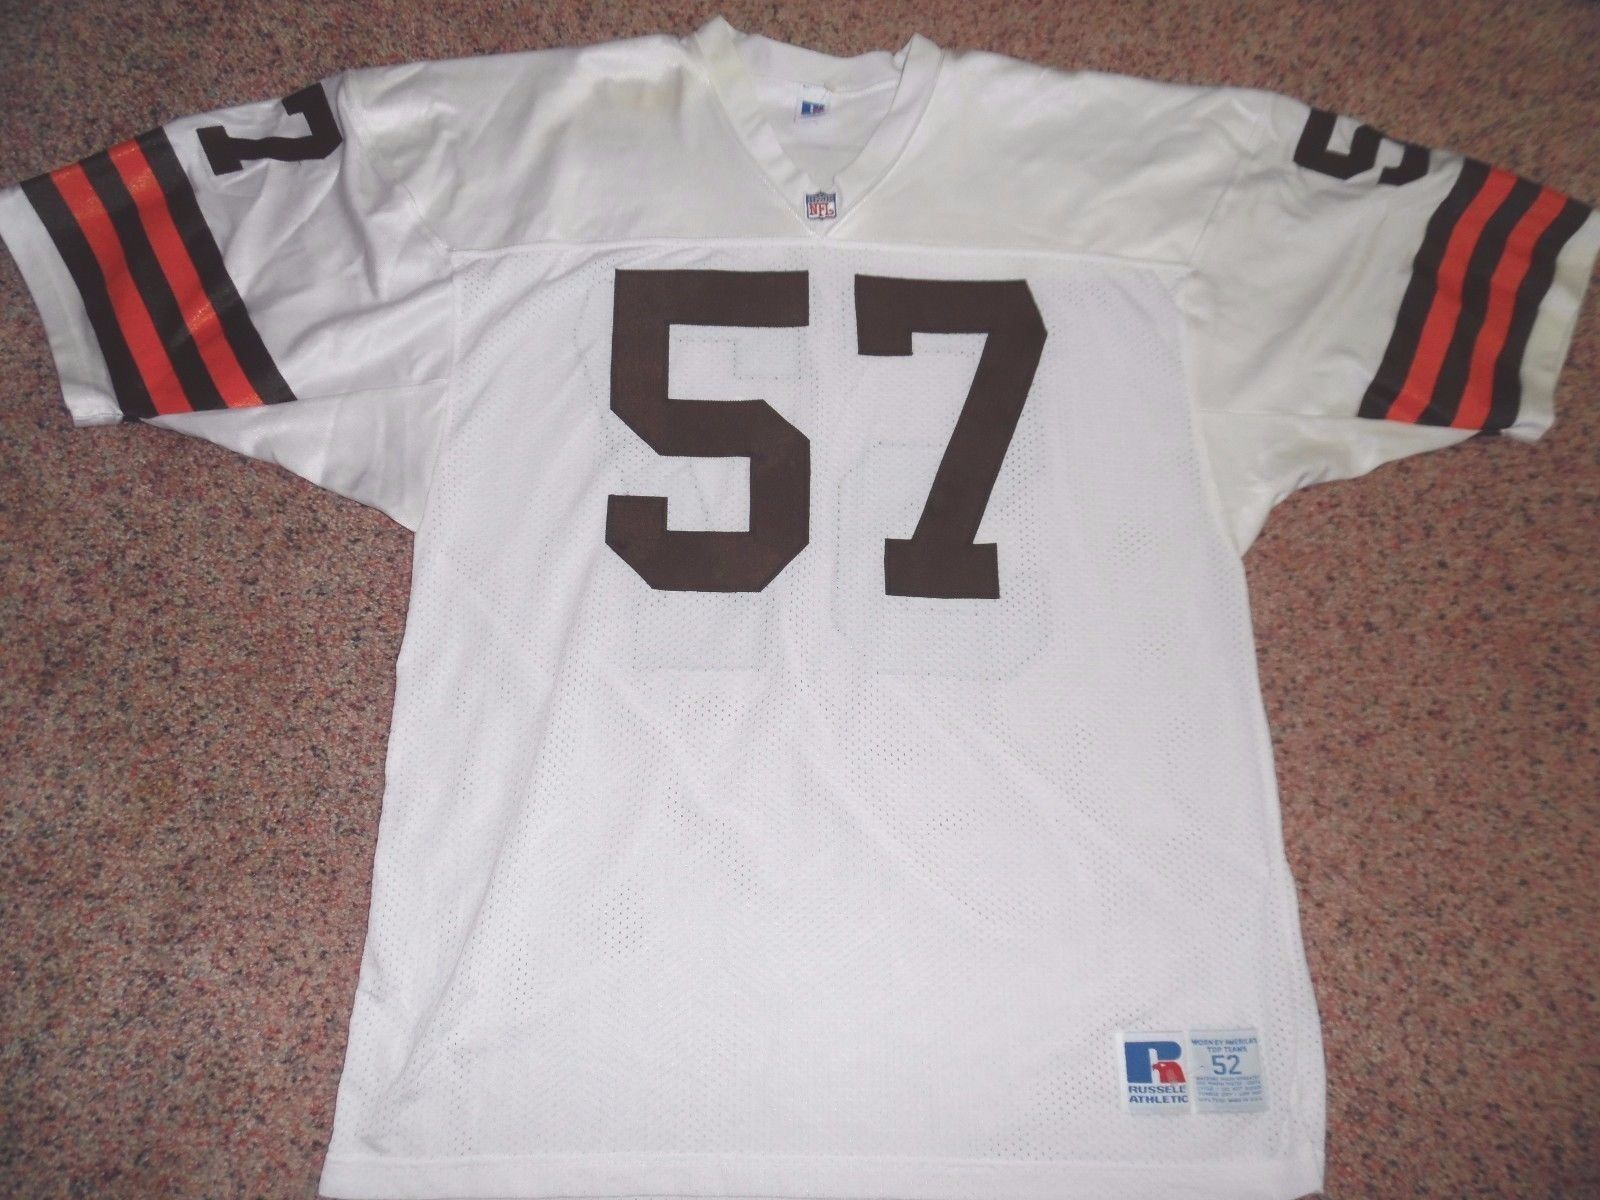 quality design 1f1f3 305ab uk clay matthews cleveland browns jersey 6274b 3f8ef